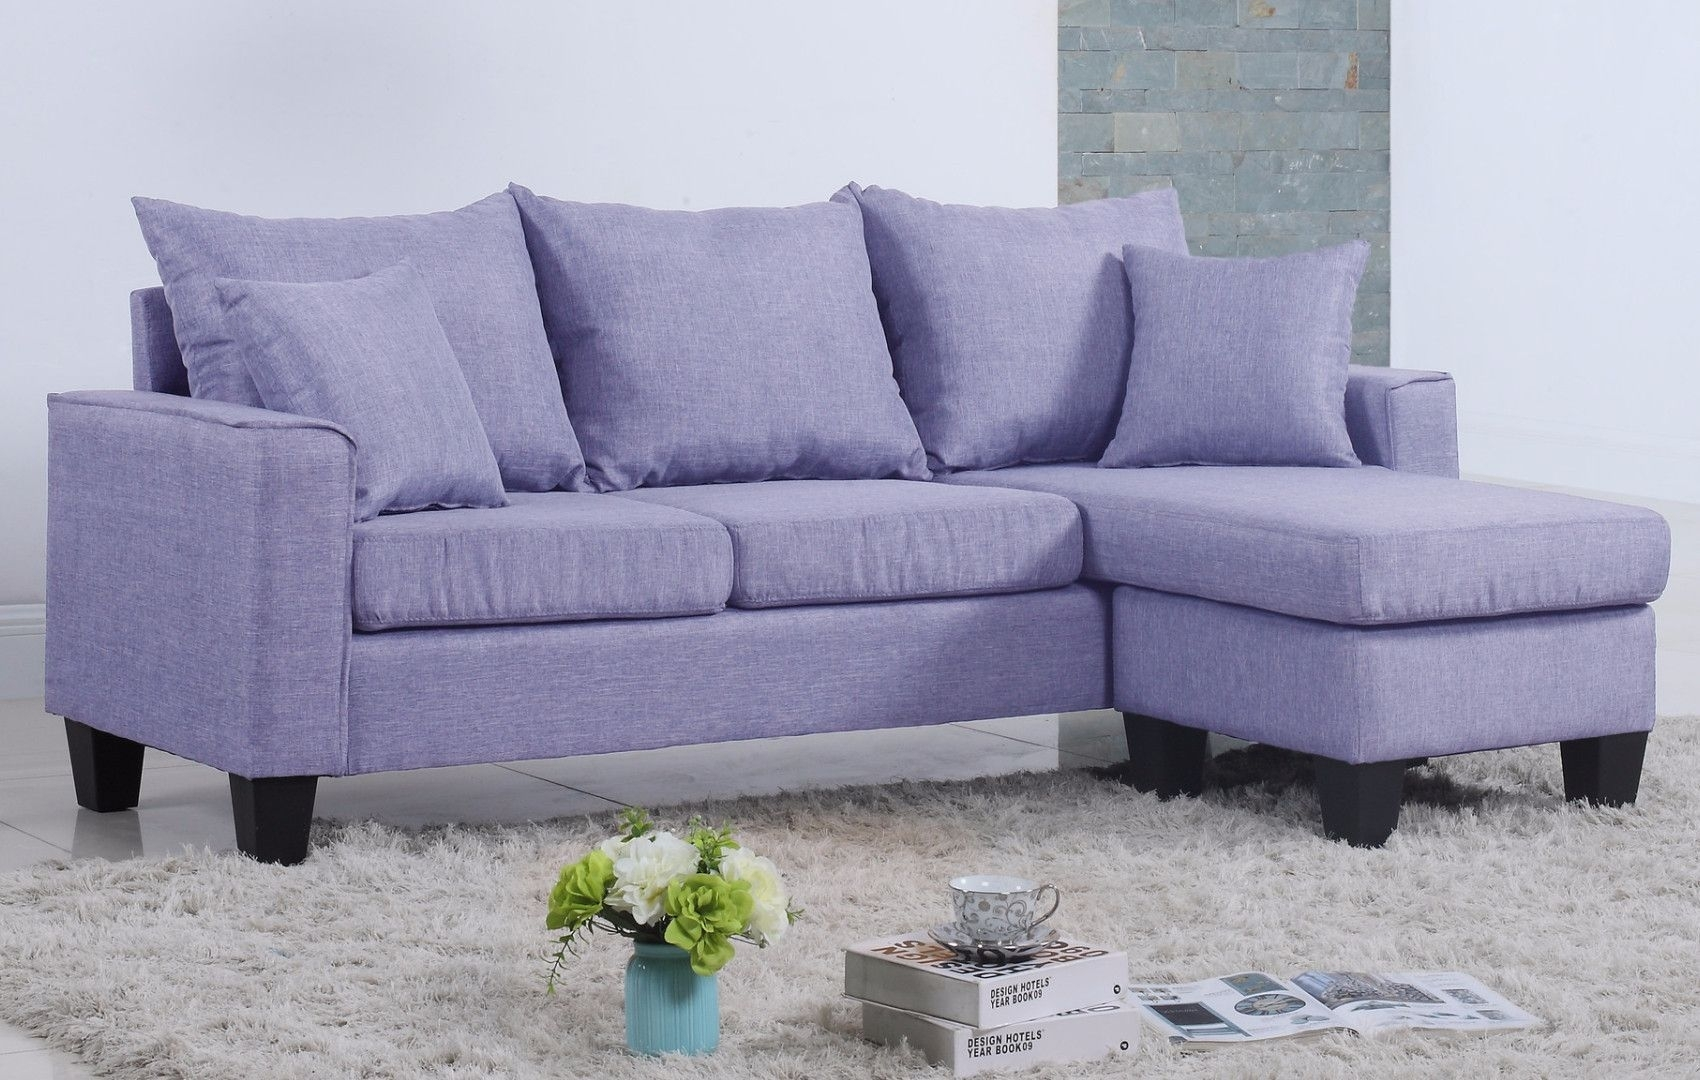 Modern Linen Fabric Small Space Sectional Sofa With Reversible with regard to Collins Sofa Sectionals With Reversible Chaise (Image 18 of 30)